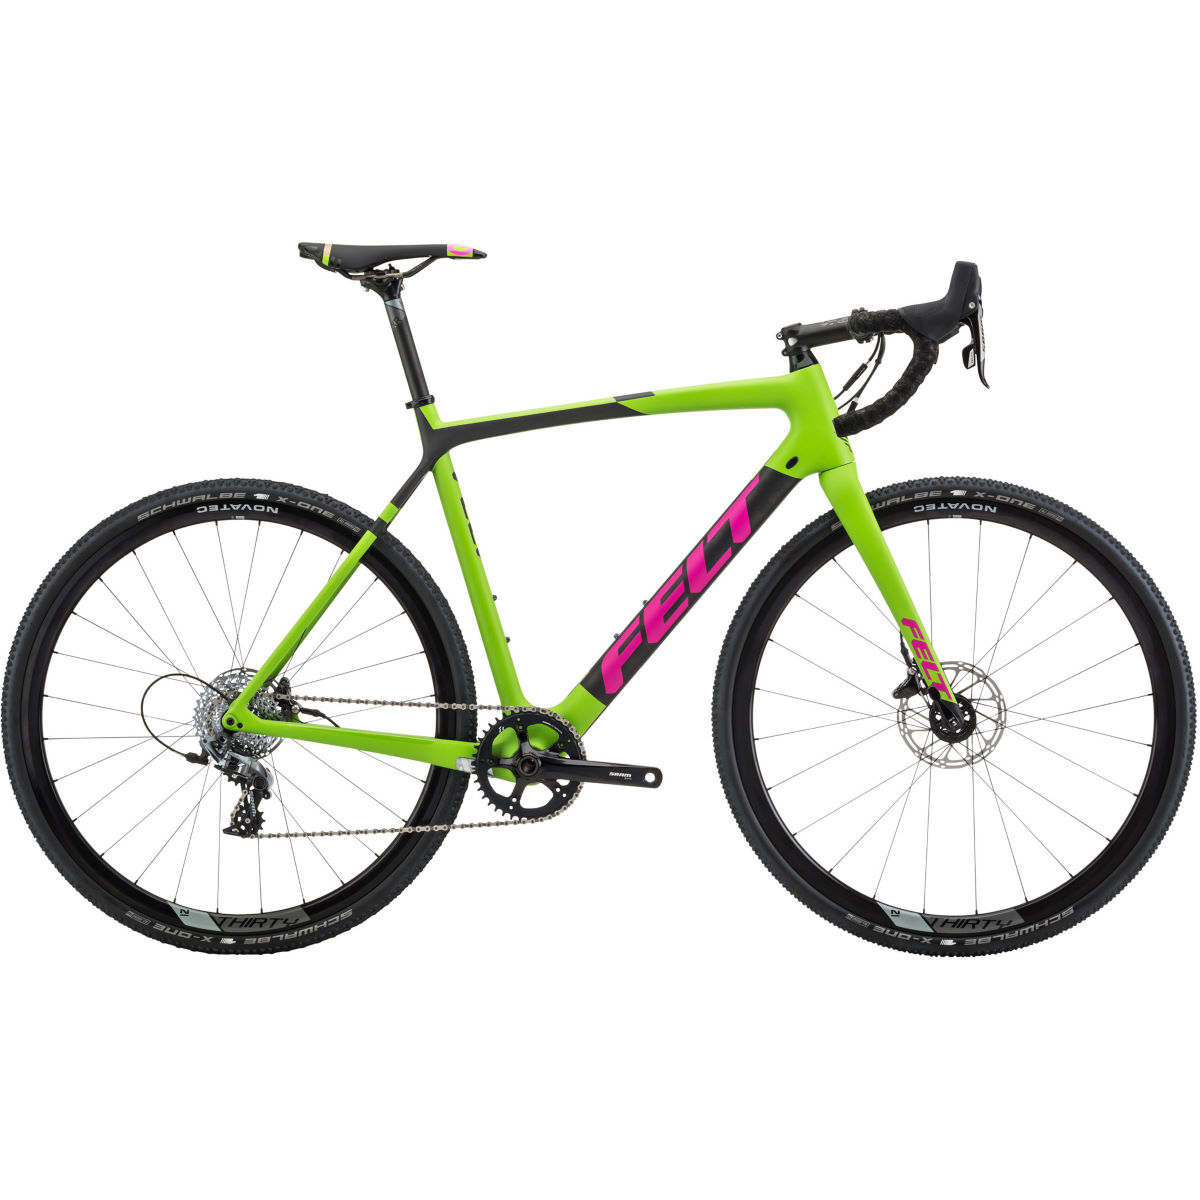 Vélo de cyclo-cross Felt F4X (2018) - 53cm Stock Bike